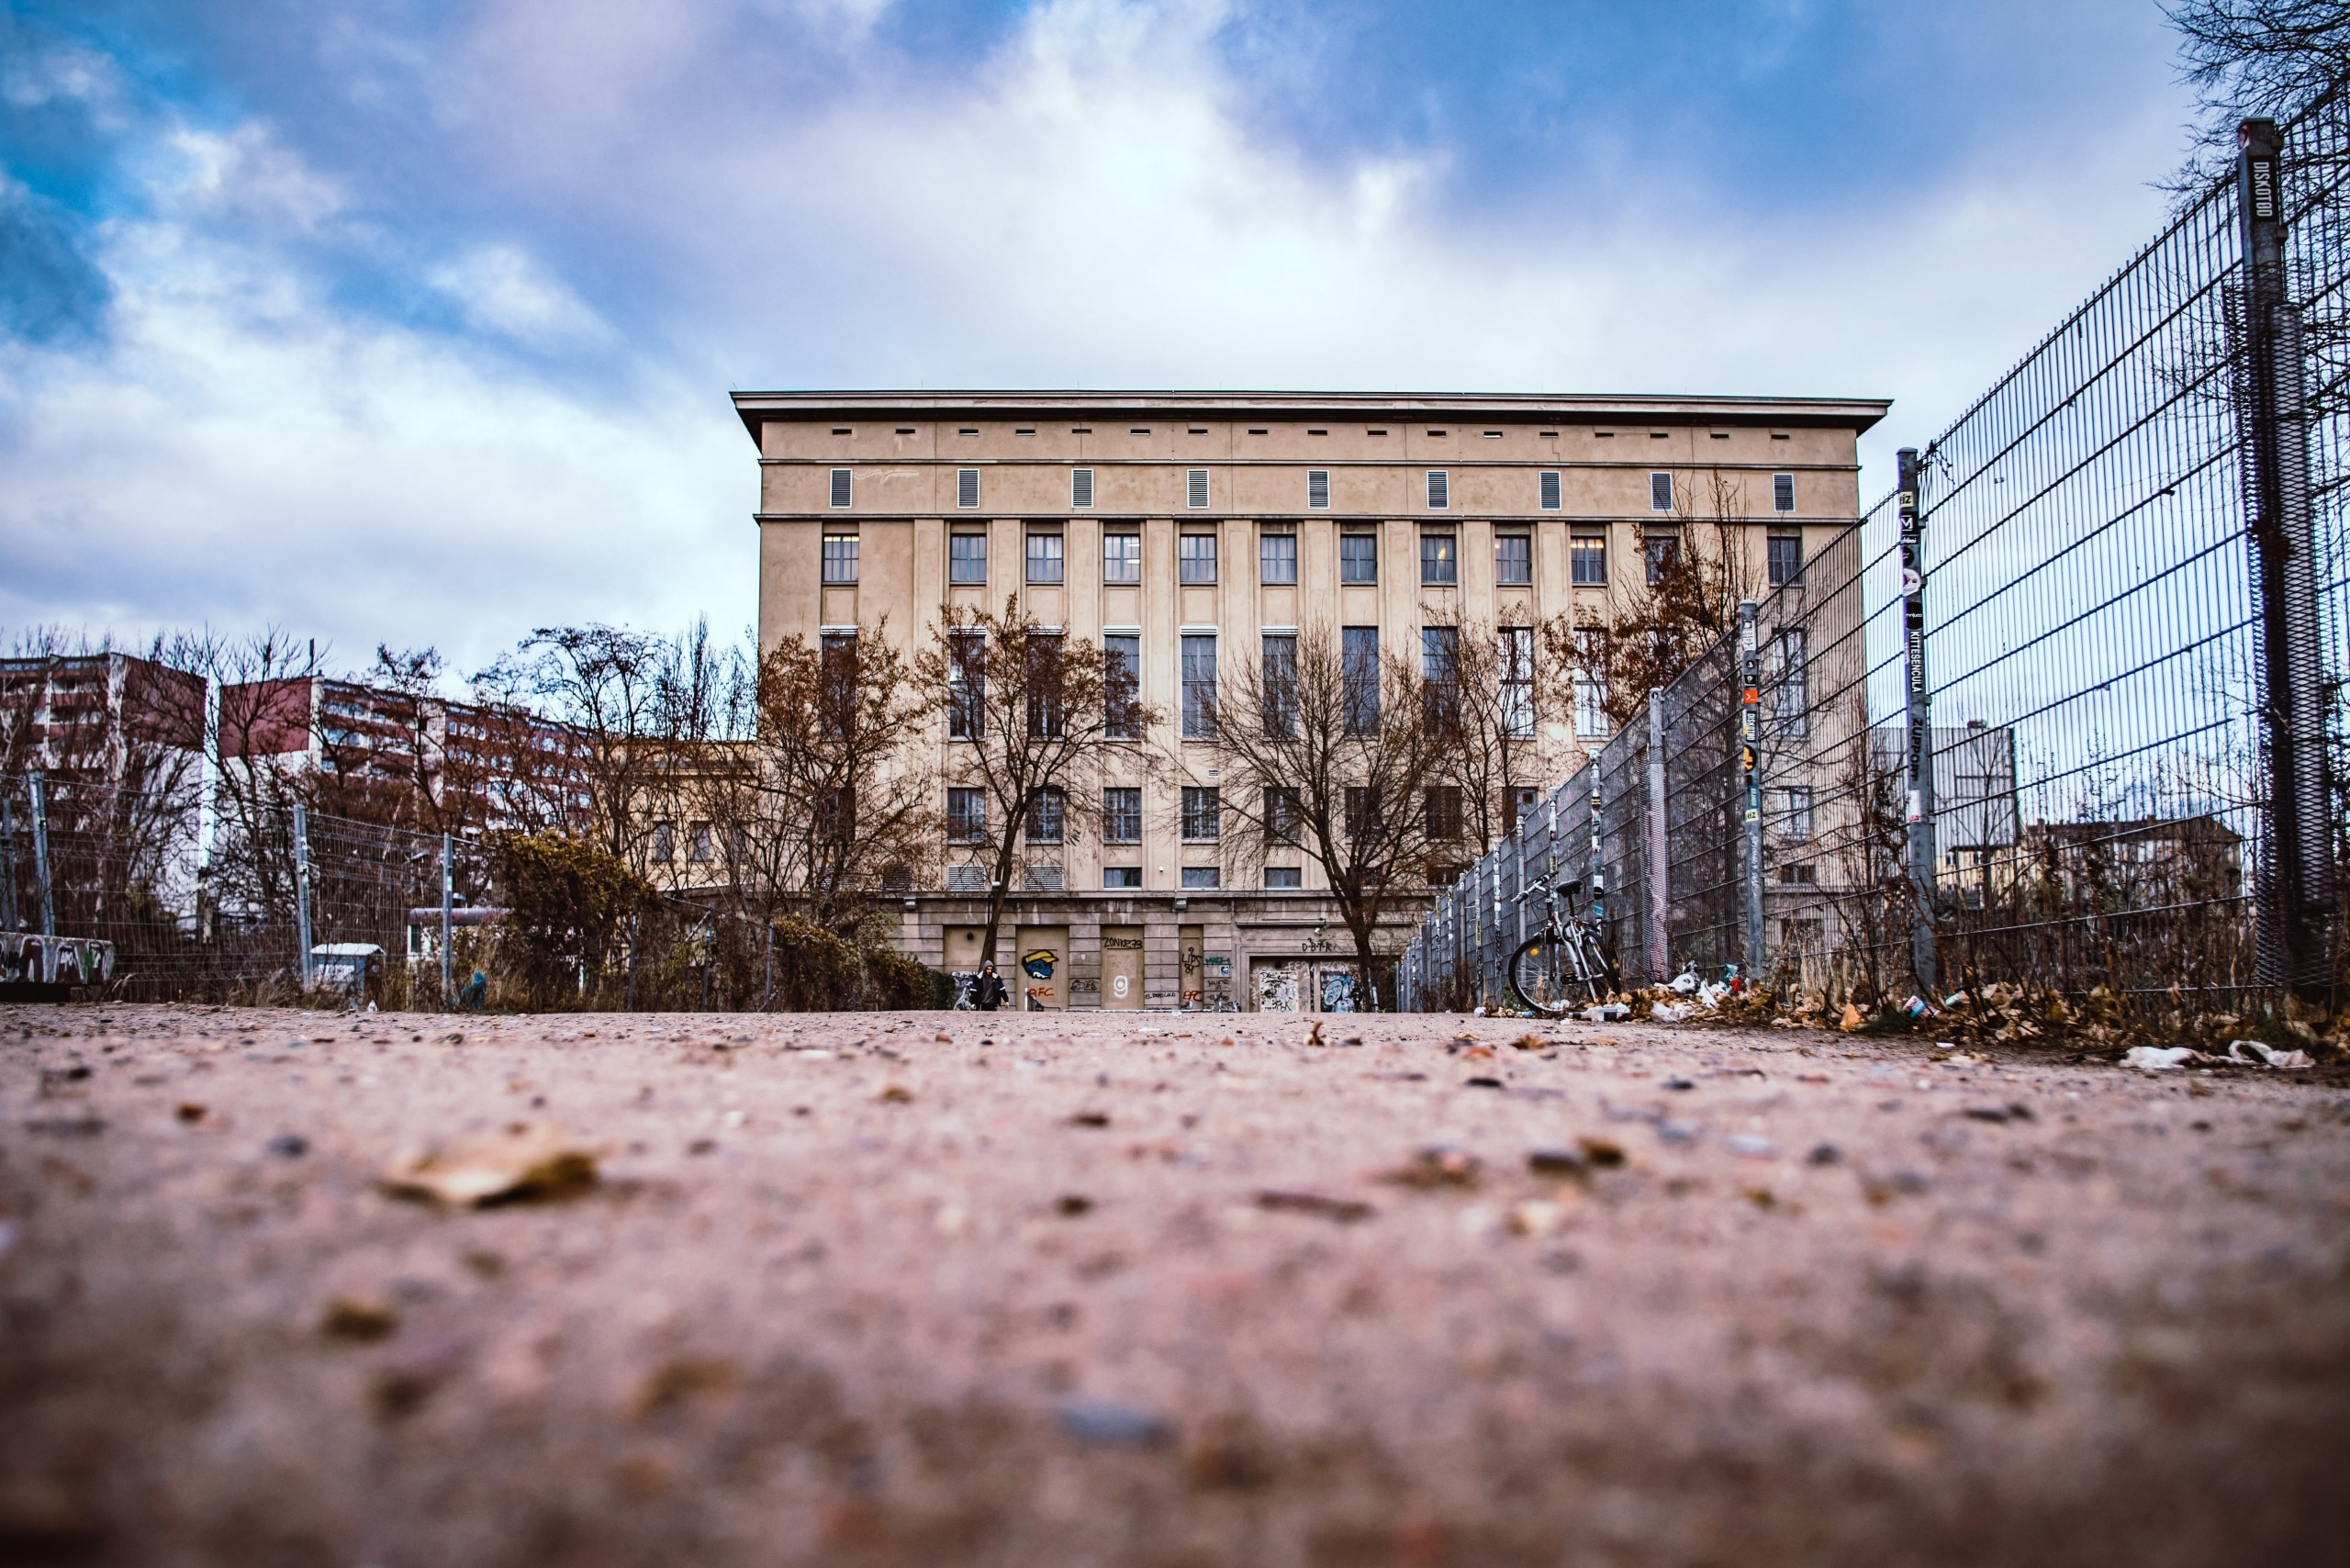 berghain reopens